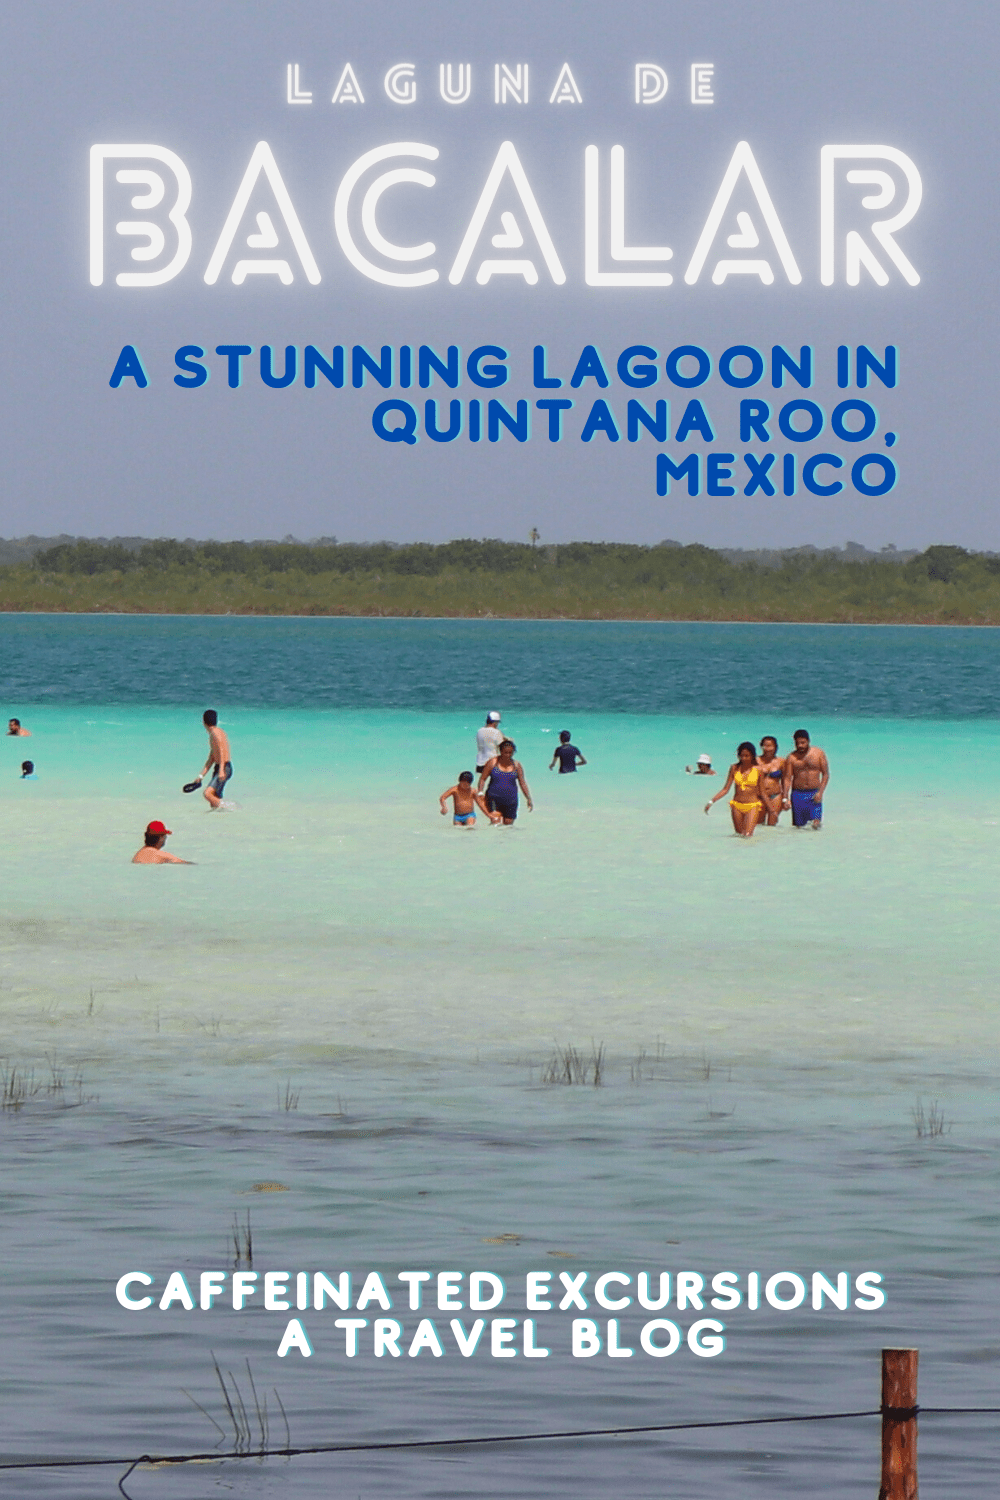 "Check out this post to learn all about Bacalar, my favorite lagoon in Mexico! Known as ""Laguna de siete colores"" (lagoon of seven colors) in Spanish for the wide variety of shades of blue in the water, Bacalar is a small town you won't want to miss! #bacalar #laguna #lagunadebacalar #bacalarmexico #mexico #quintanaroo #bacalarquintanaroo #mexicobacalar #visitmexico #visitbacalar #visitquintanaroo #chetumal #chetumalmexico #visitchetumal #mexicobelizeborder #belizemexicoborder #travelblog"